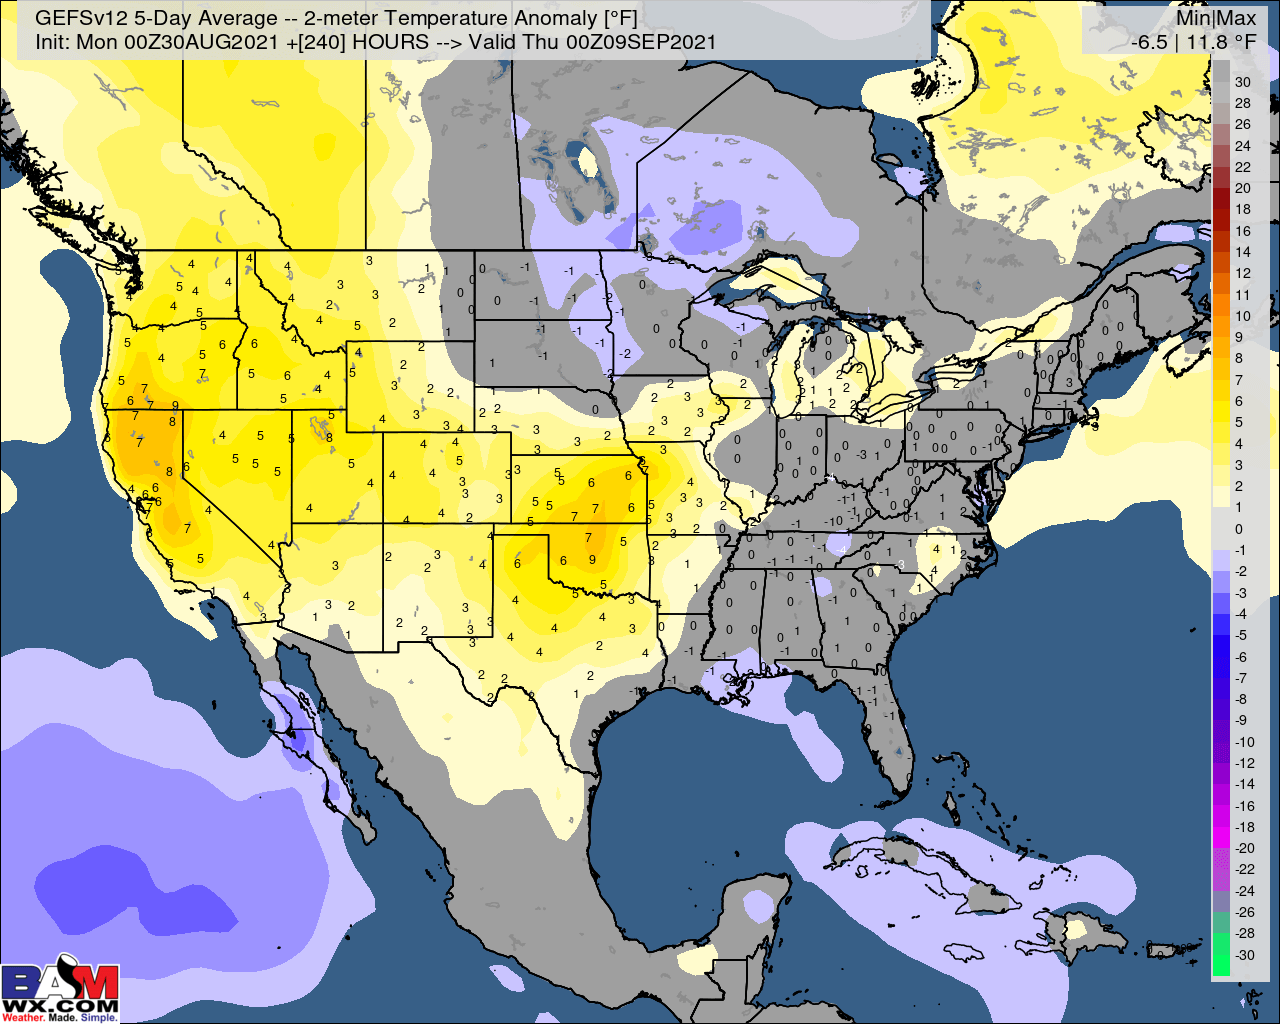 8-30-21 Early AM Energy Report: Cooler trends east on weekend data. Latest pattern thoughts here. B.